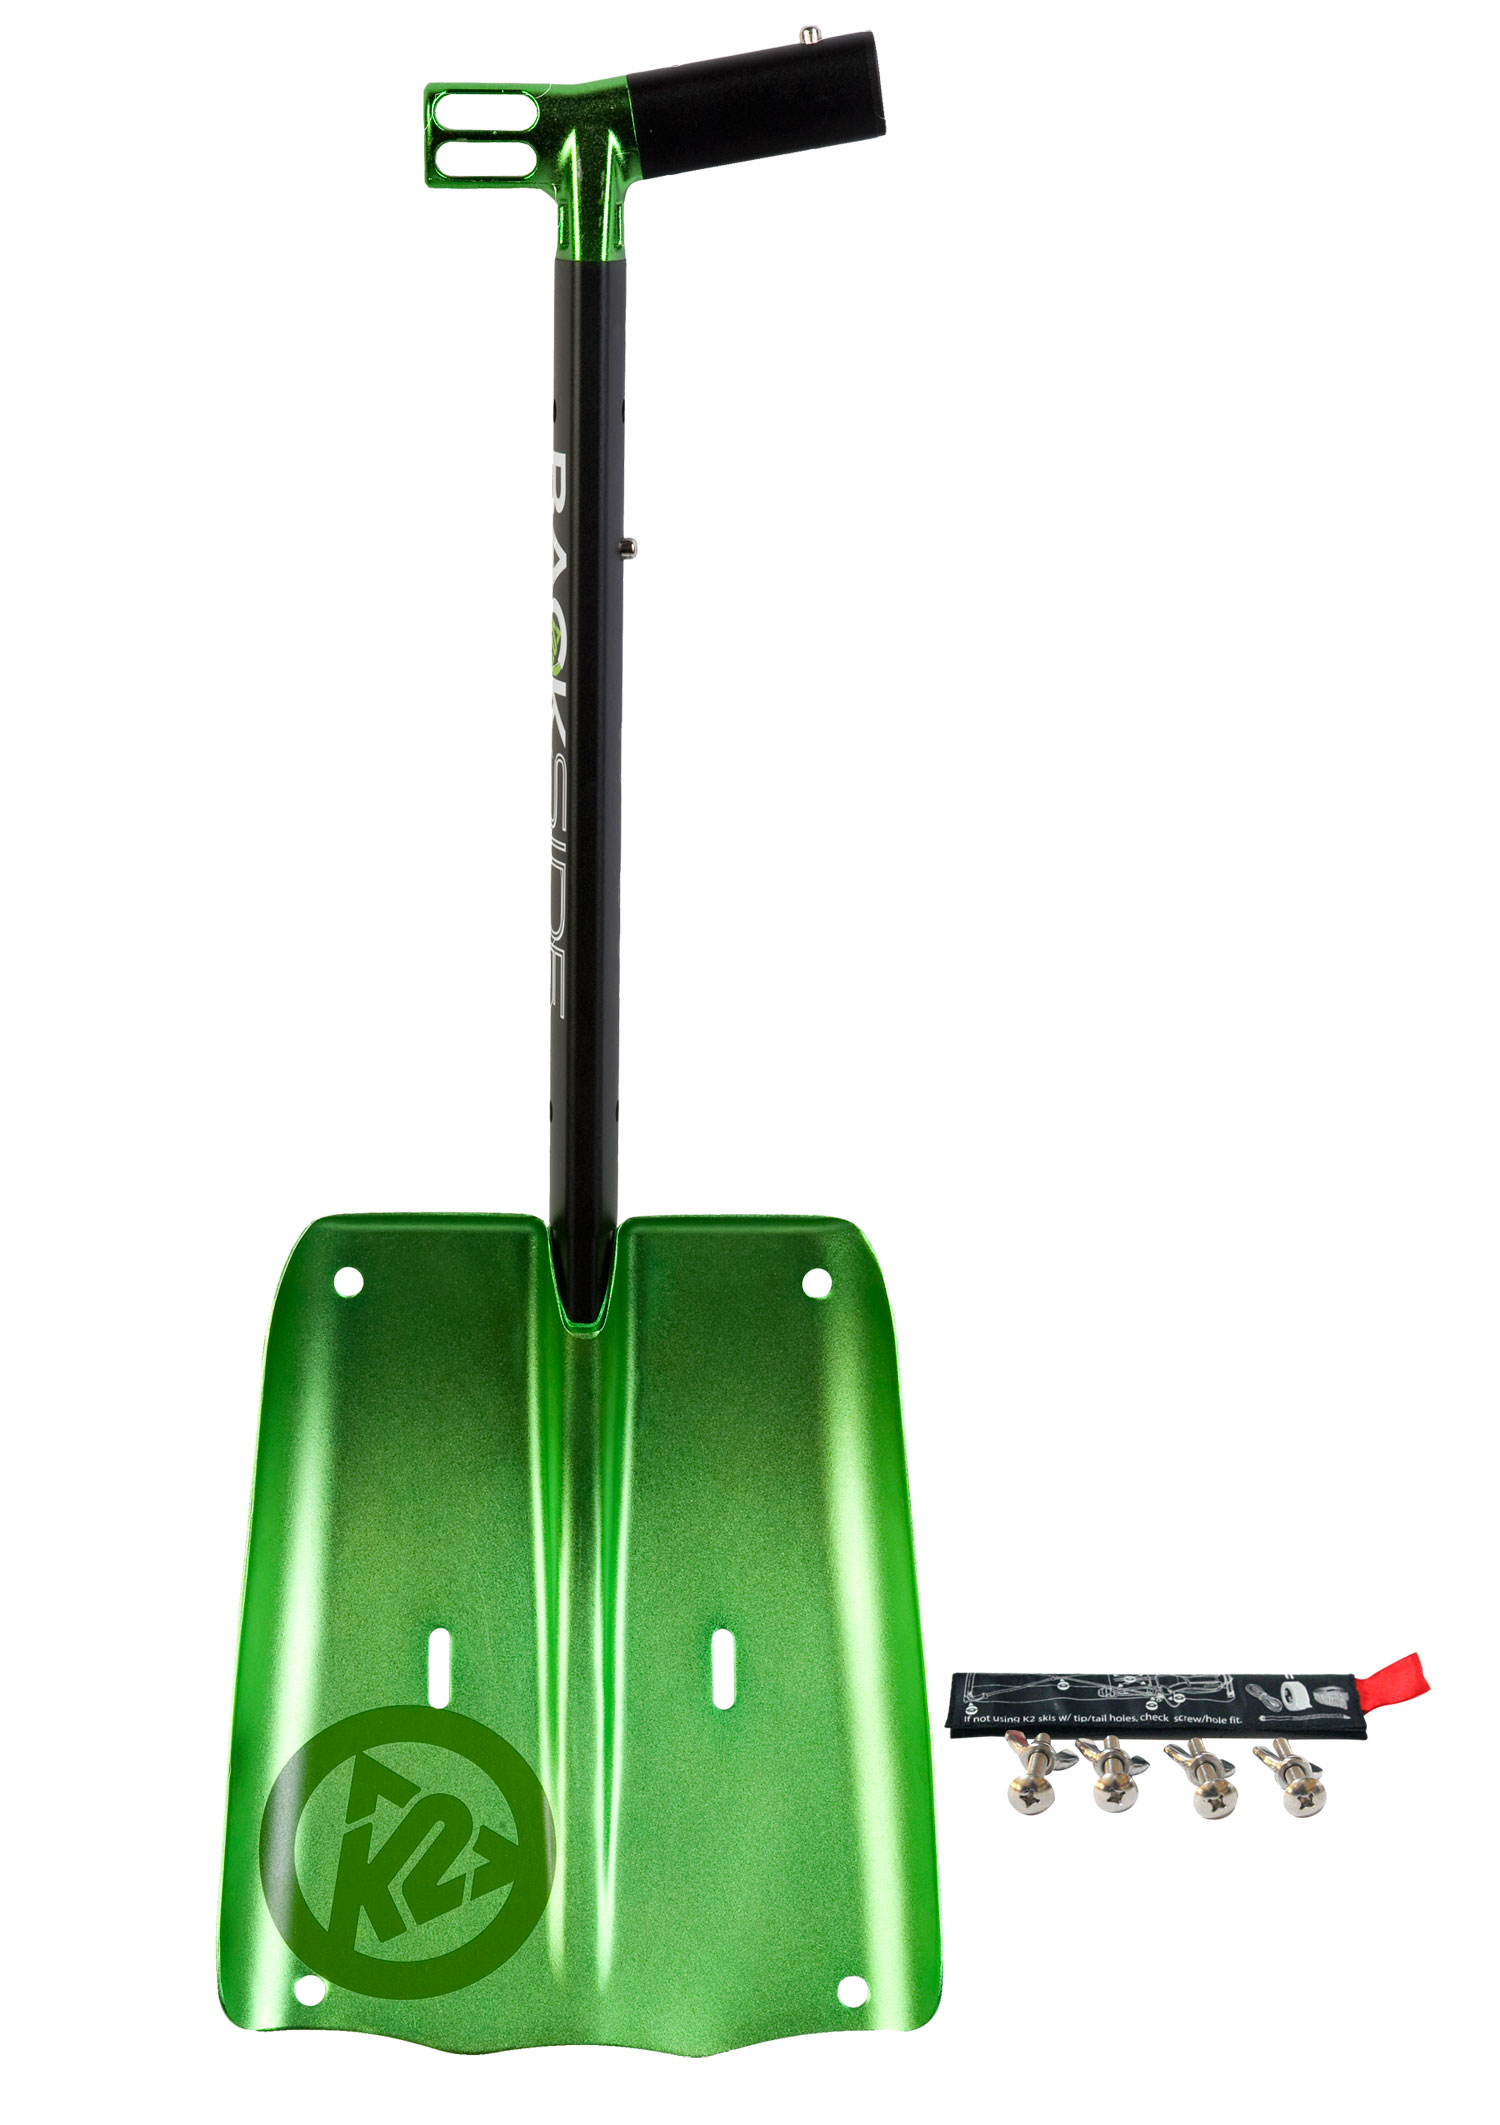 Snowboard K2 Rescue Shovel Plus - $63.95